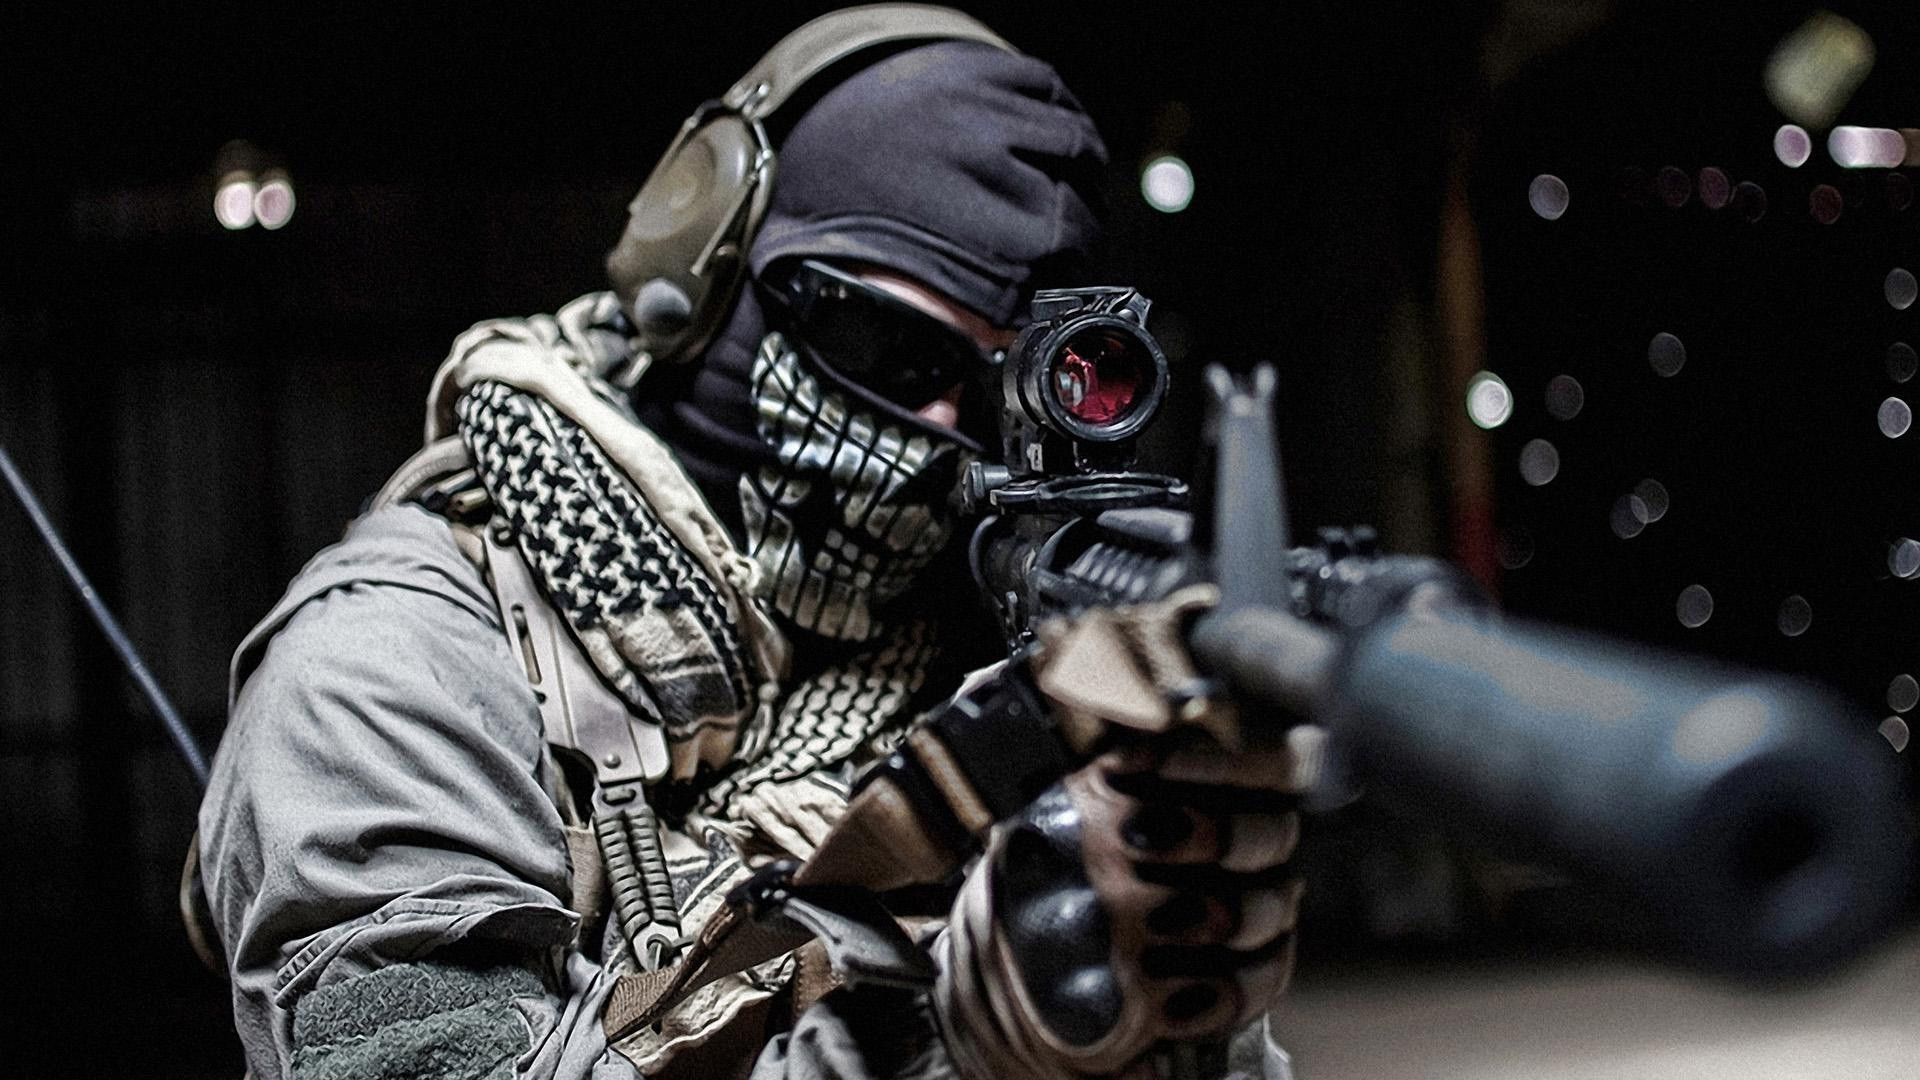 Call of Duty Black Ops Video Game Wallpapers HD Wallpapers | HD Wallpapers  | Pinterest | Black ops, Hd wallpaper and Wallpaper